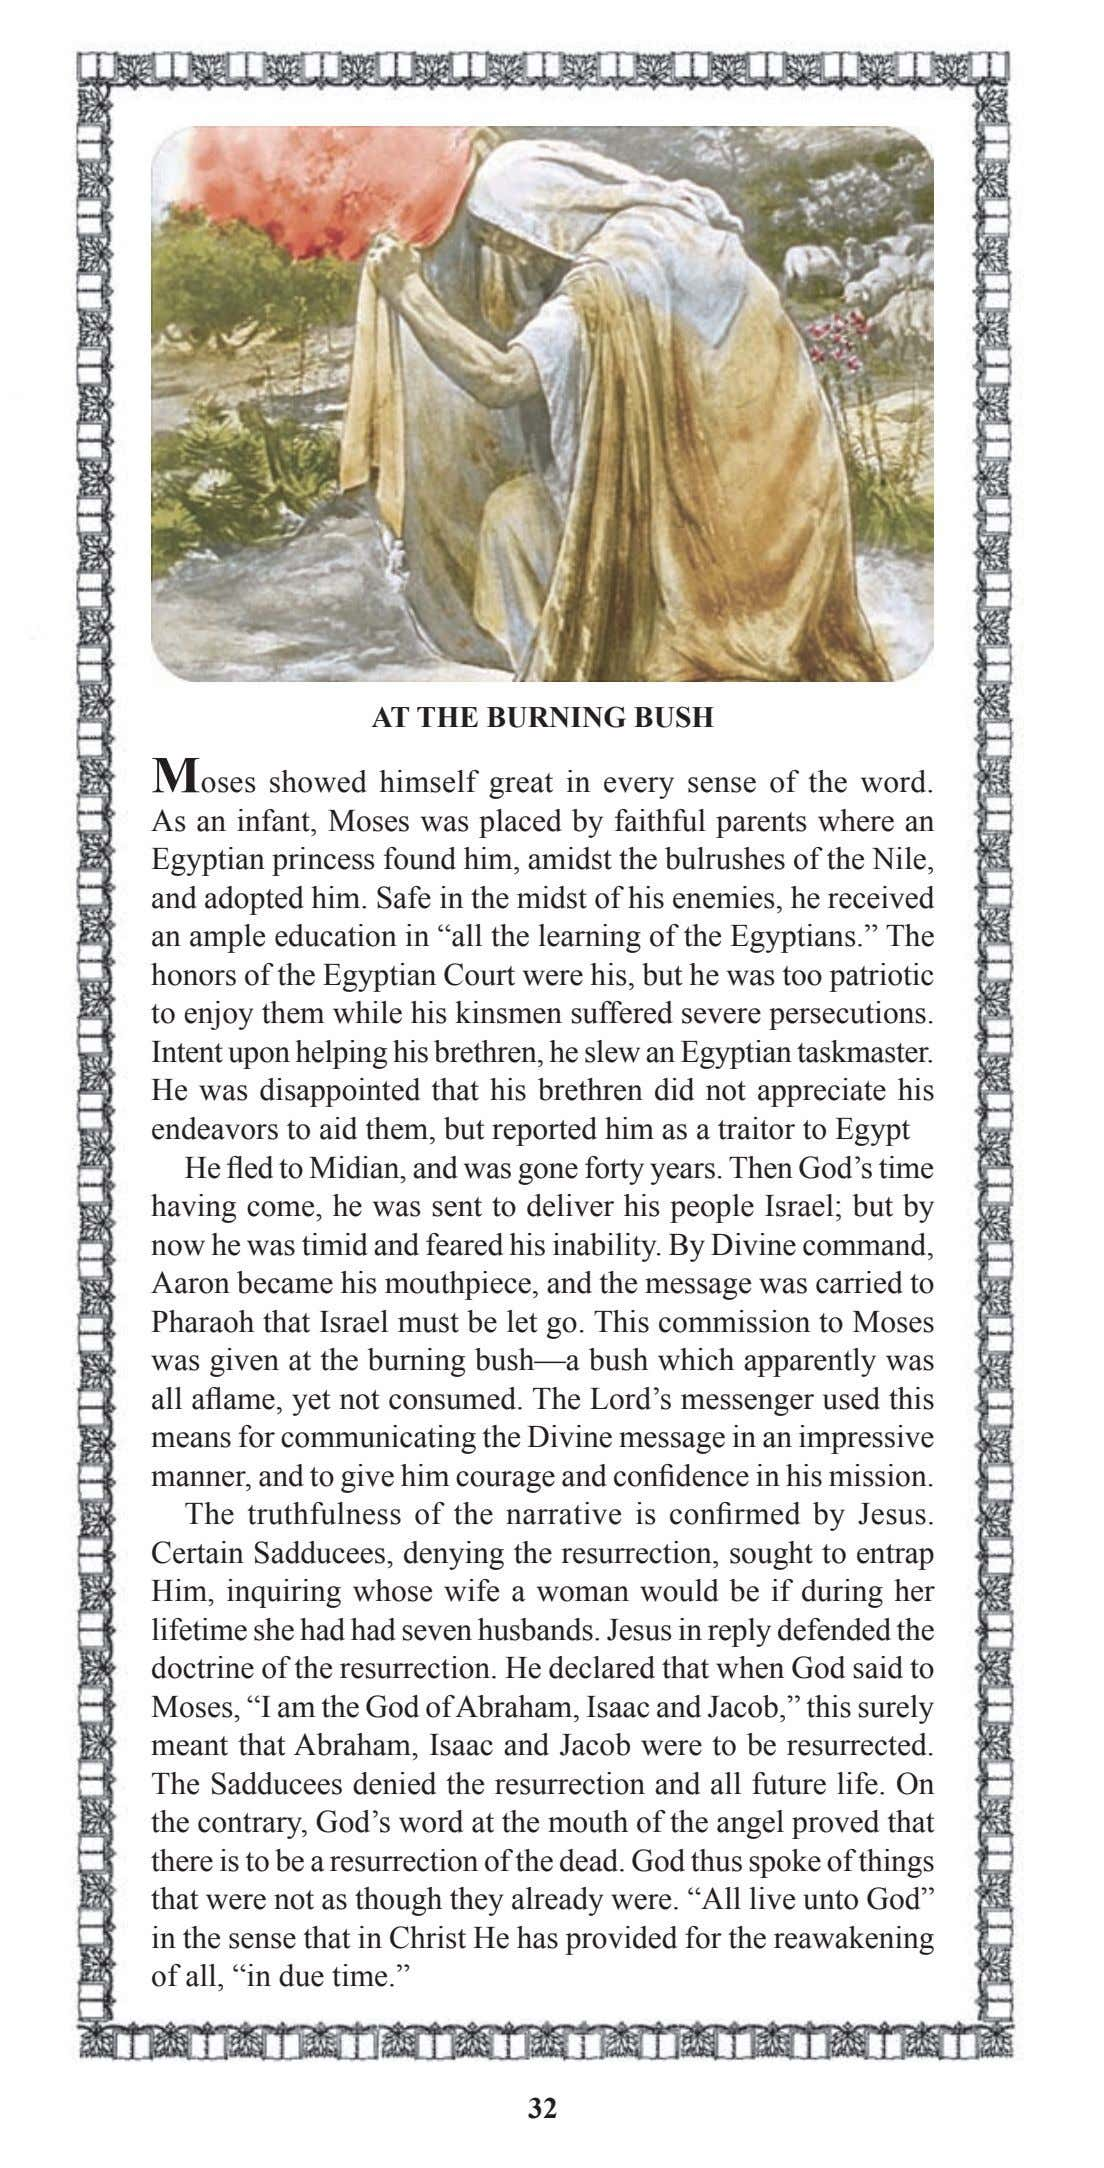 AT THE BURNING BUSH Moses showed himself great in every sense of the word. As